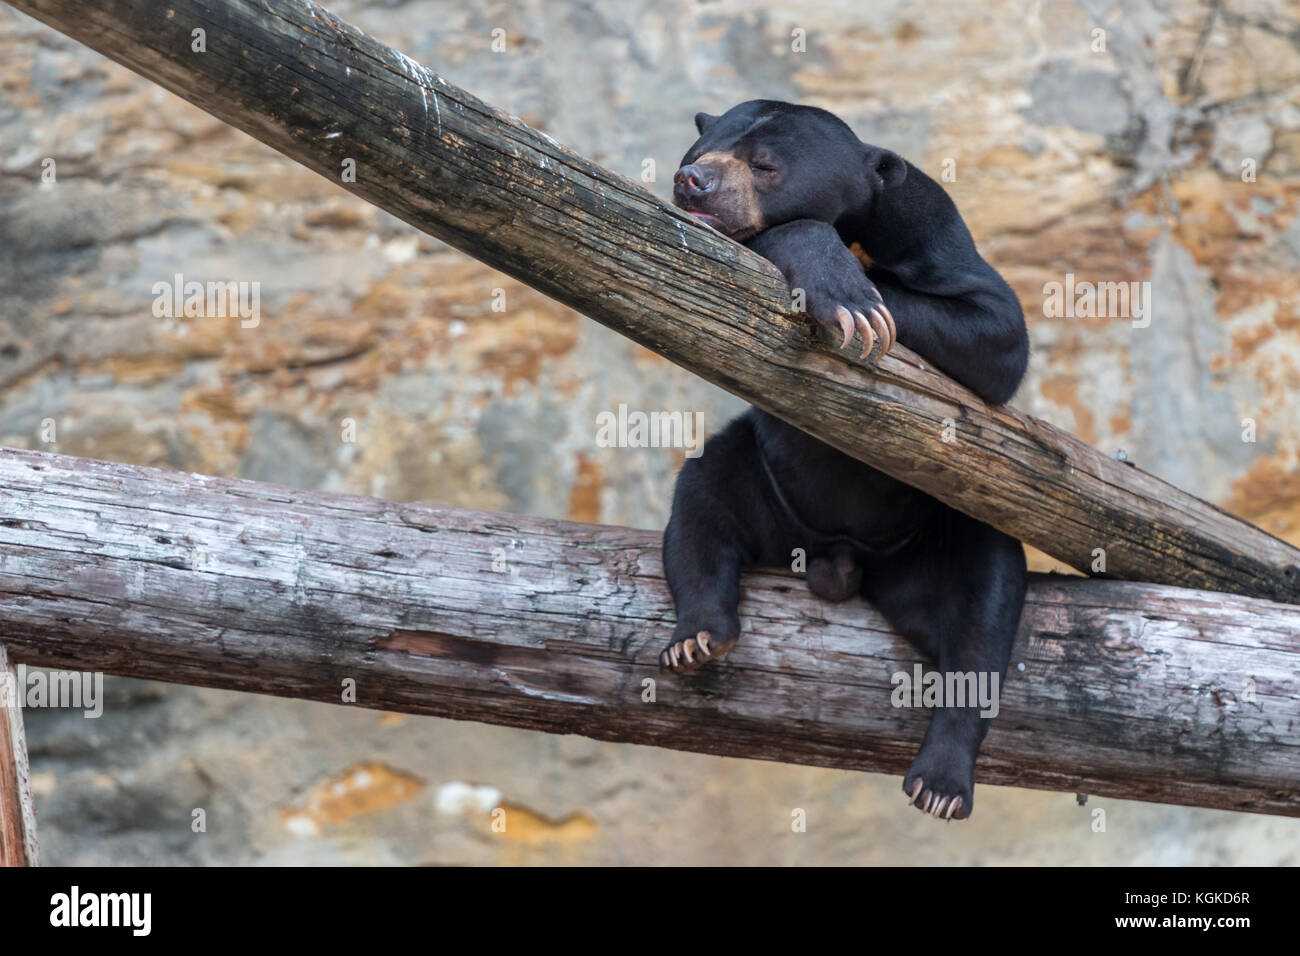 Black Bear Cub with Head Resting on Tree and Eyes Closed - Stock Image